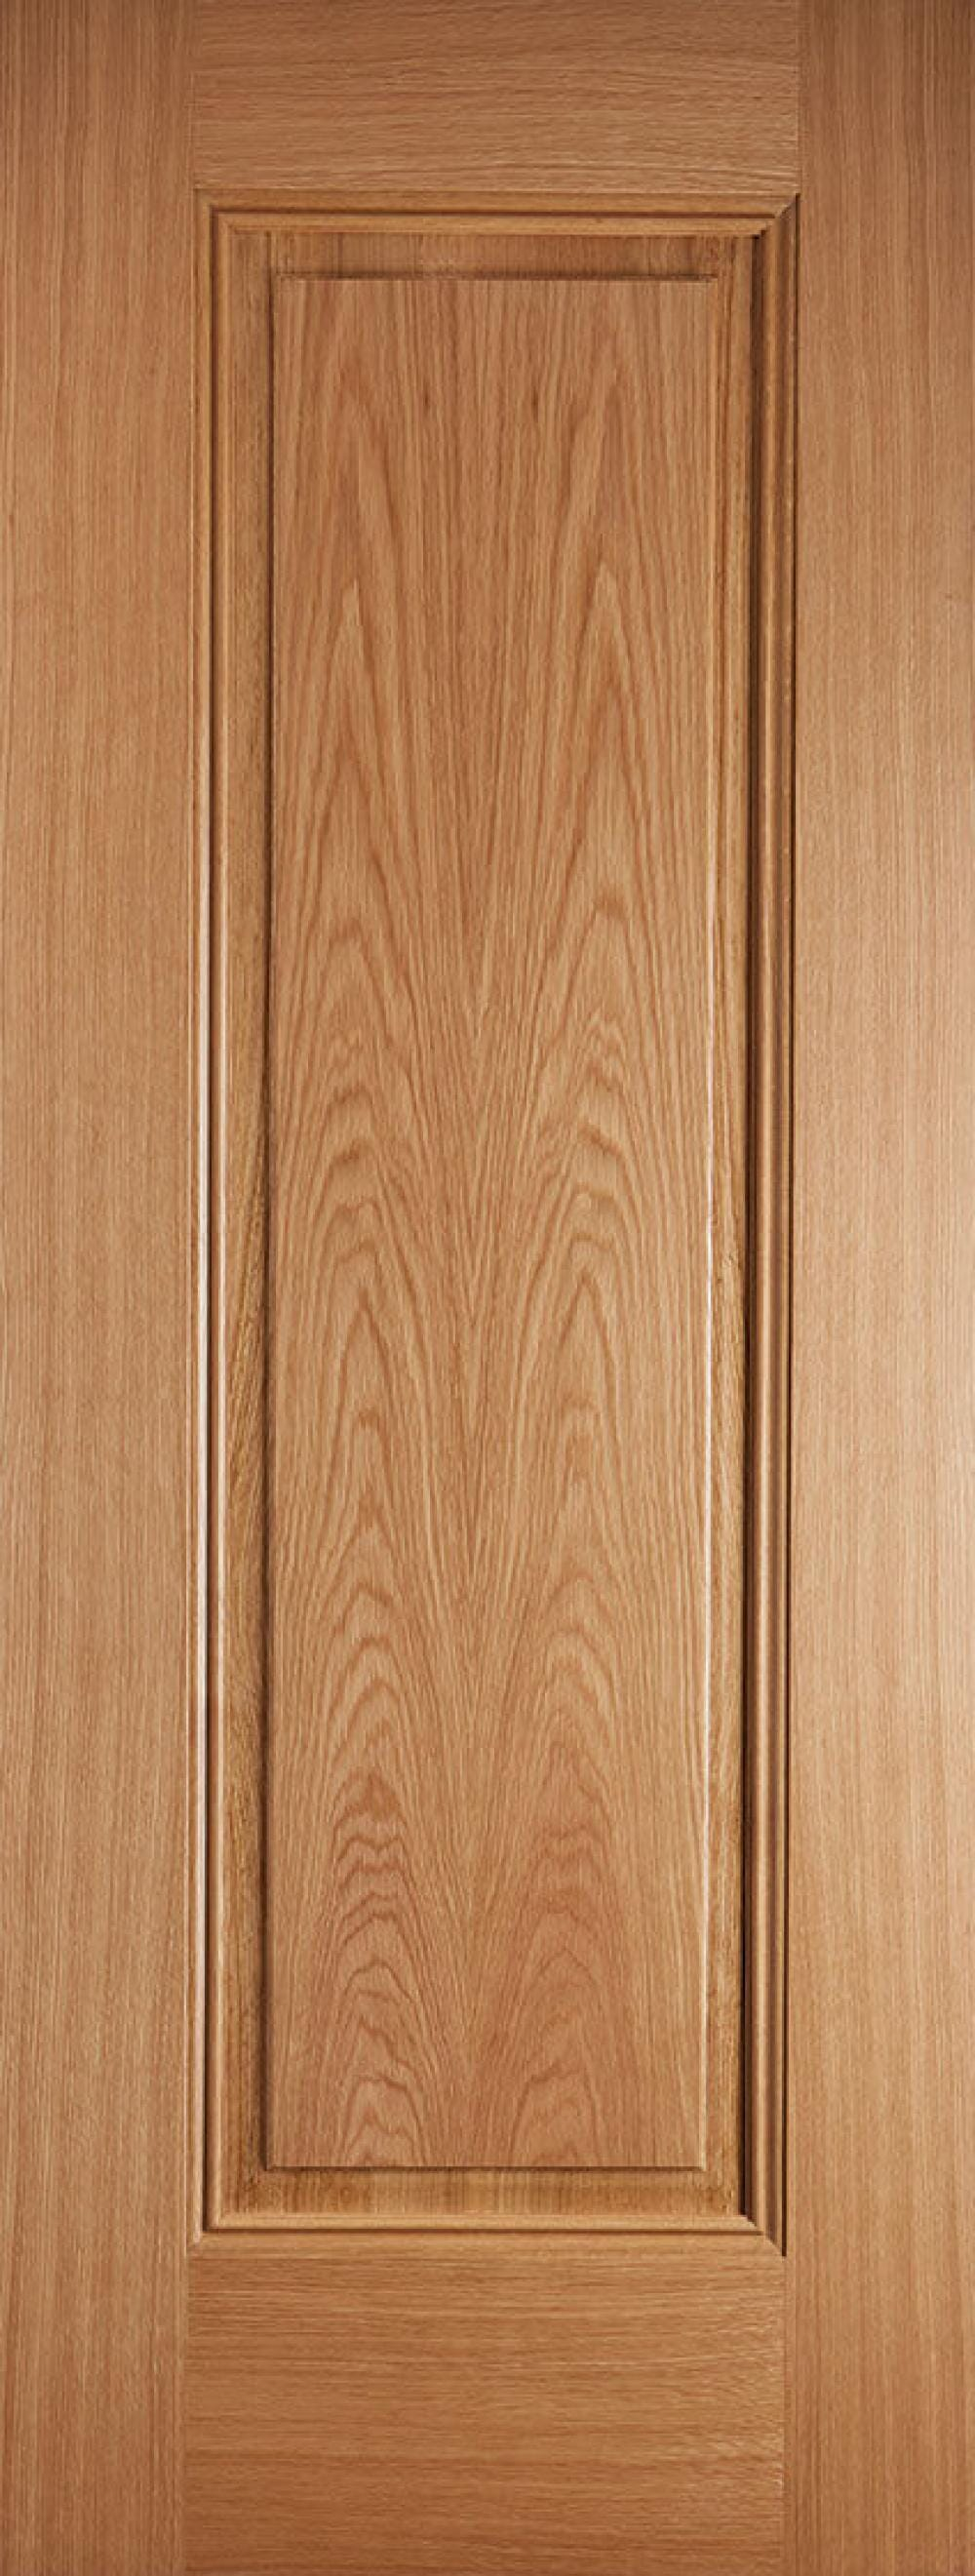 Eindhoven Oak 1 Panel - Prefinished Image